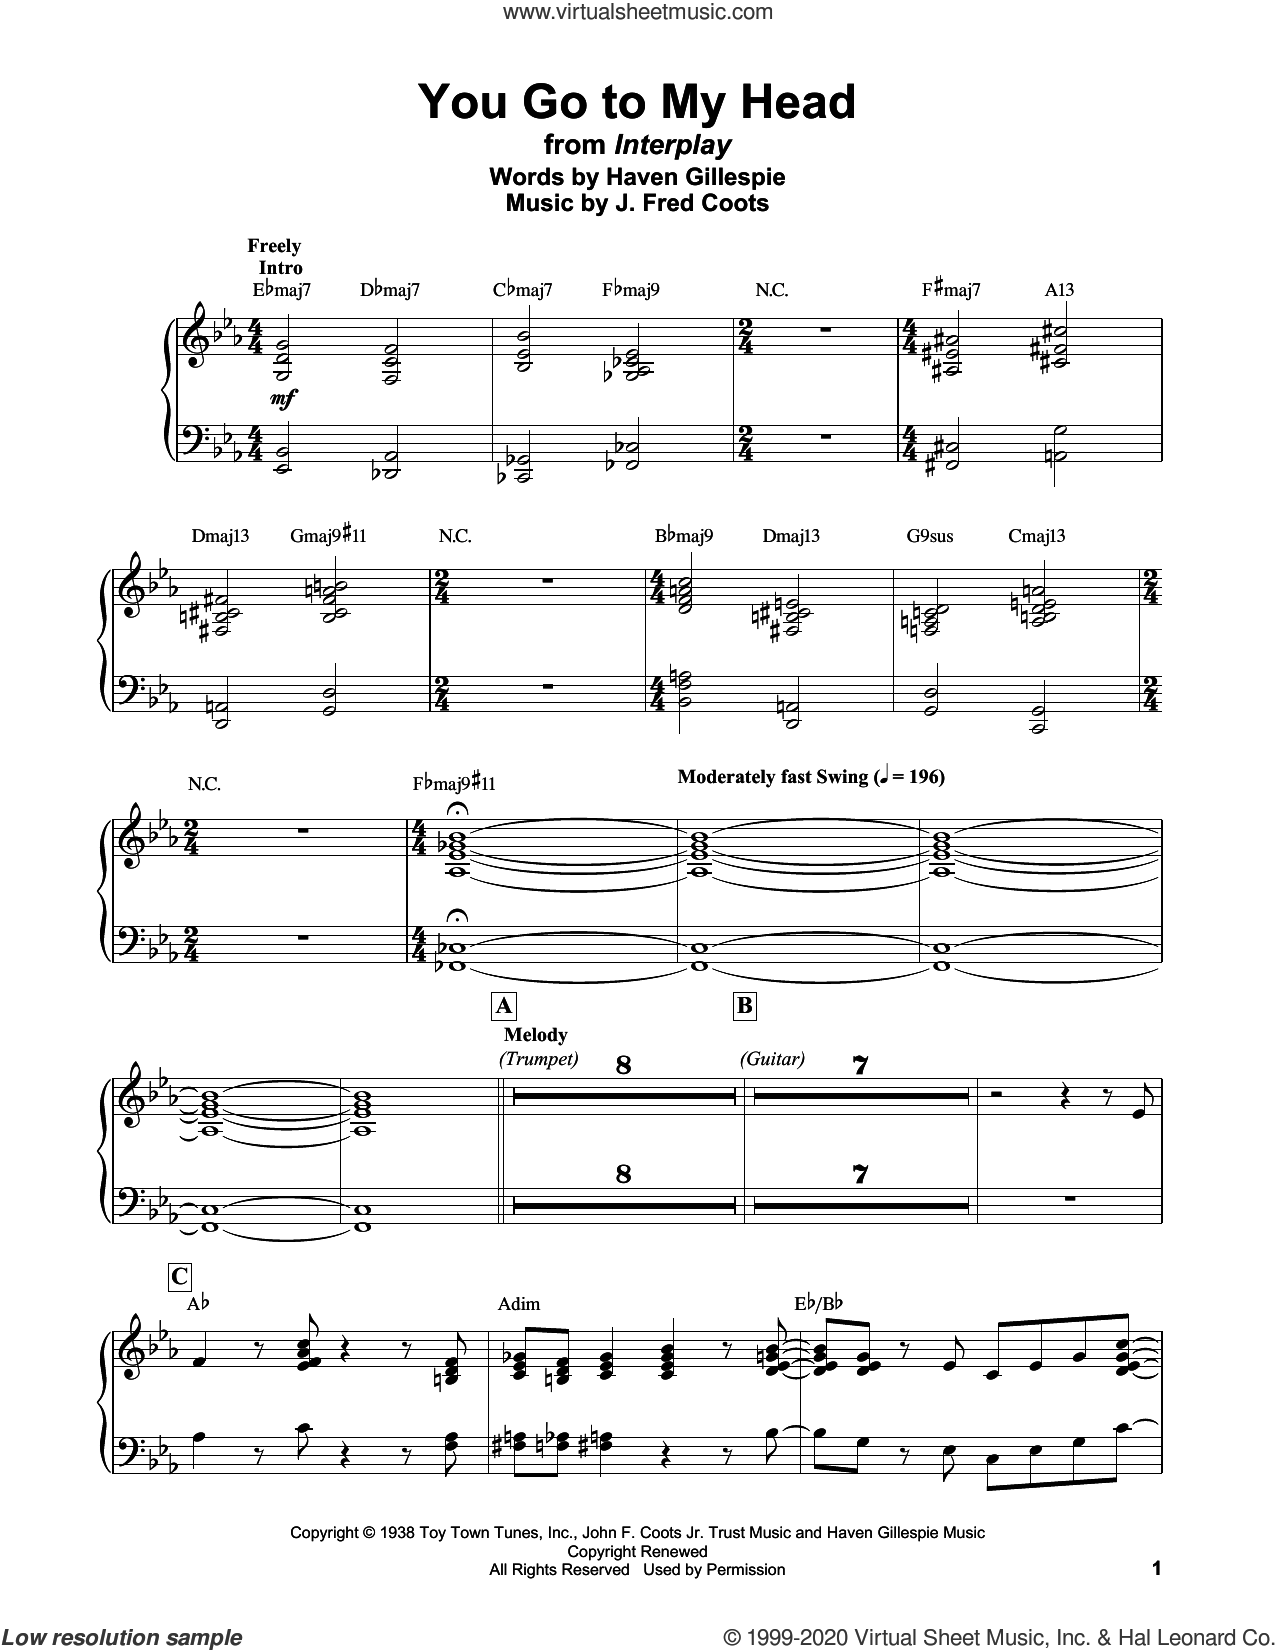 You Go To My Head sheet music for piano solo by Bill Evans, Haven Gillespie and J. Fred Coots, intermediate skill level